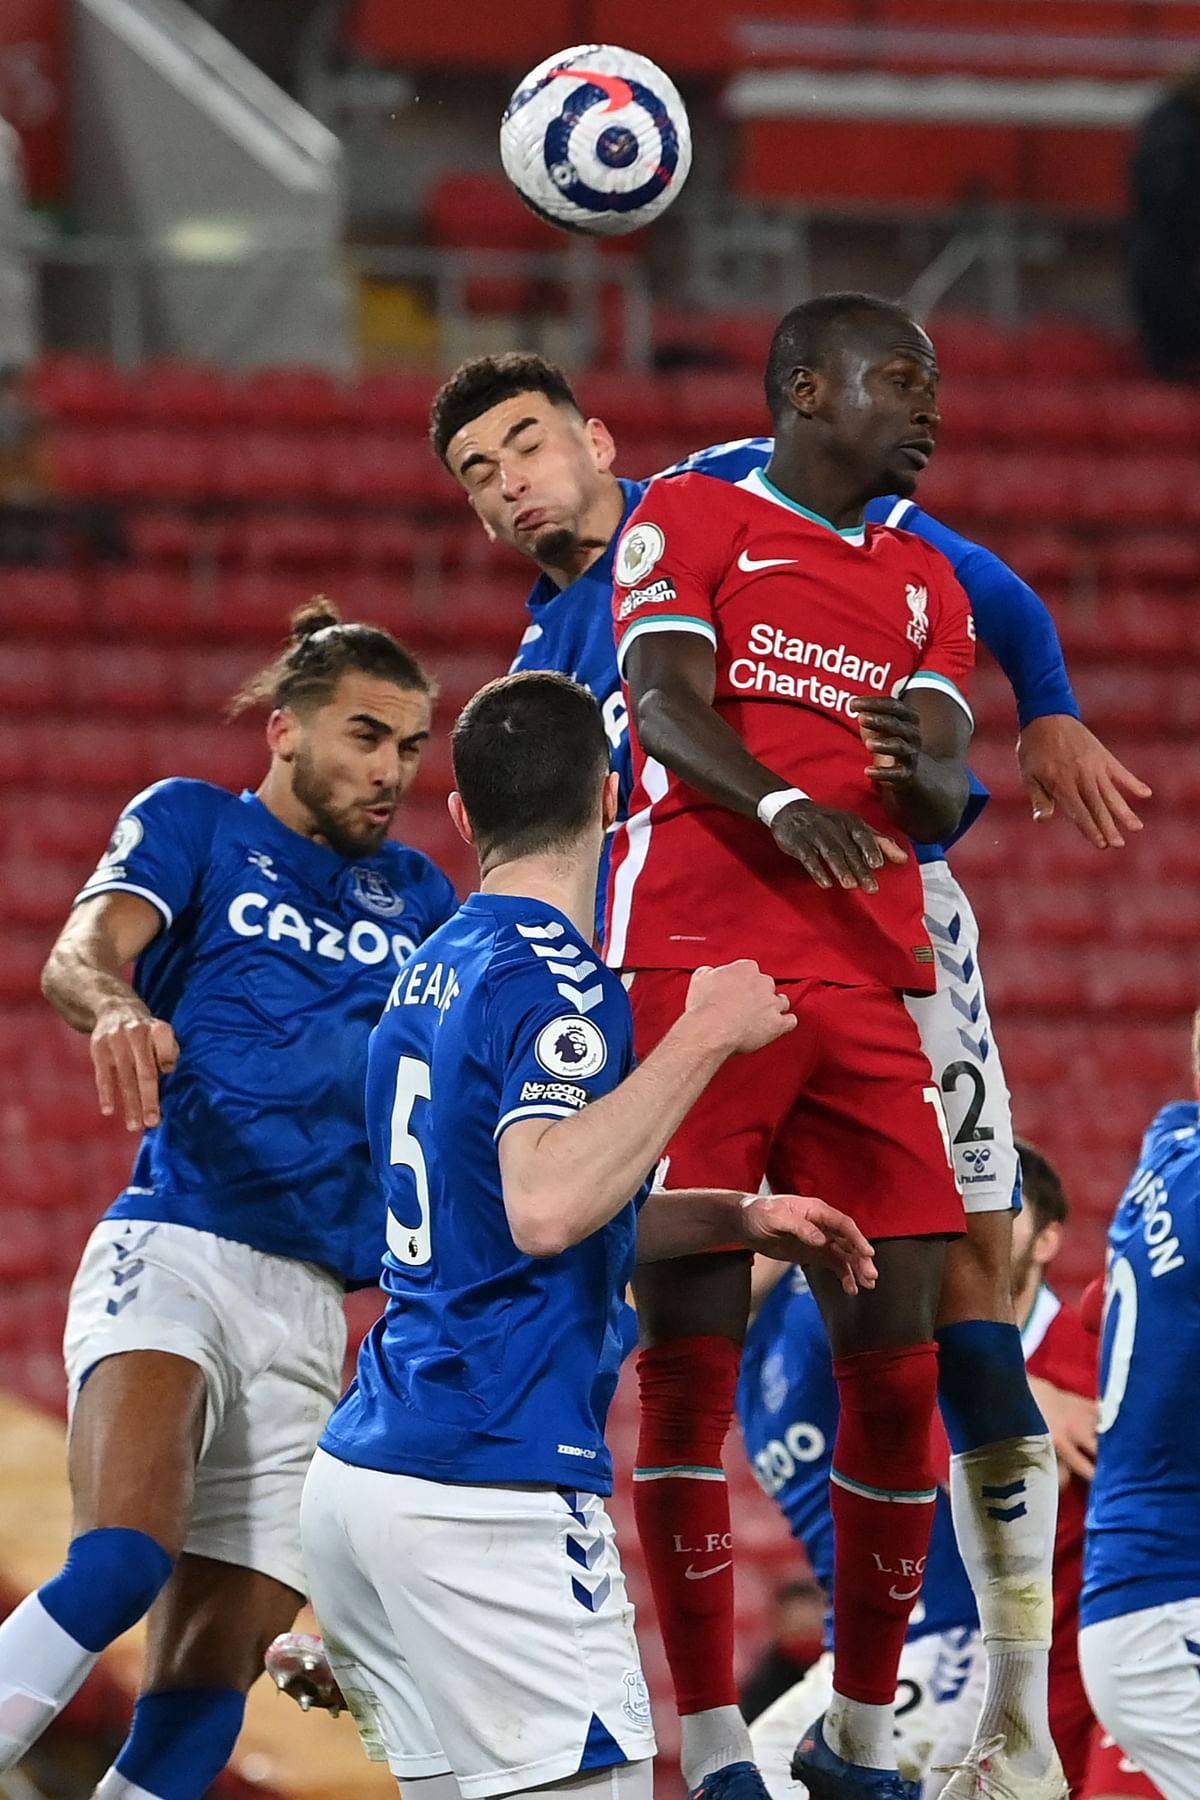 Liverpool's Senegalese striker Sadio Mane (R) vies with Everton's English striker Dominic Calvert-Lewin (L) and Everton's English midfielder Ben Godfrey (C) during their Premire League on Saturday.